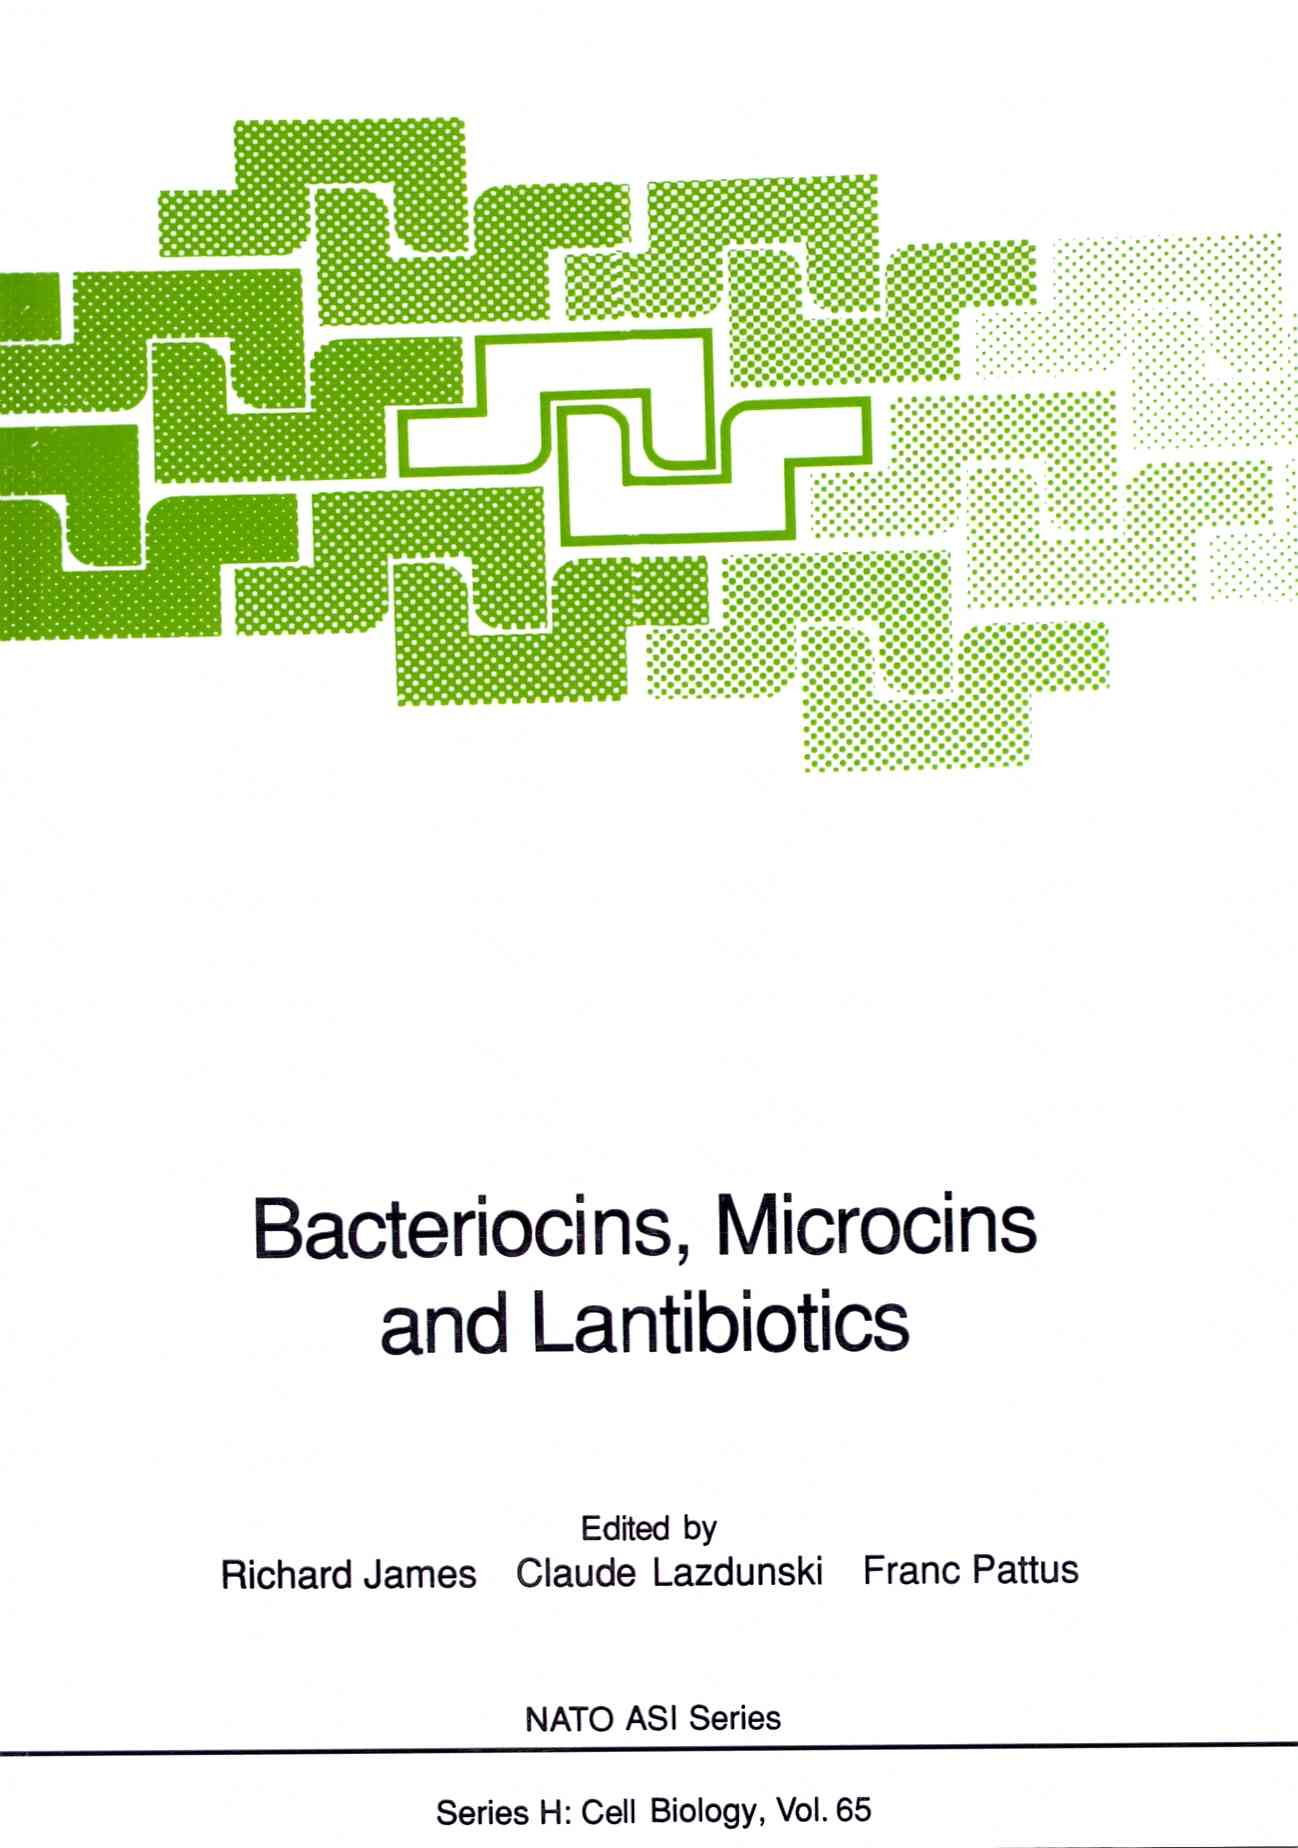 Bacteriocins, Microcins and Lantibiotics By James, Richard (EDT)/ Lazdunski, Claude (EDT)/ Pattus, Franc (EDT)